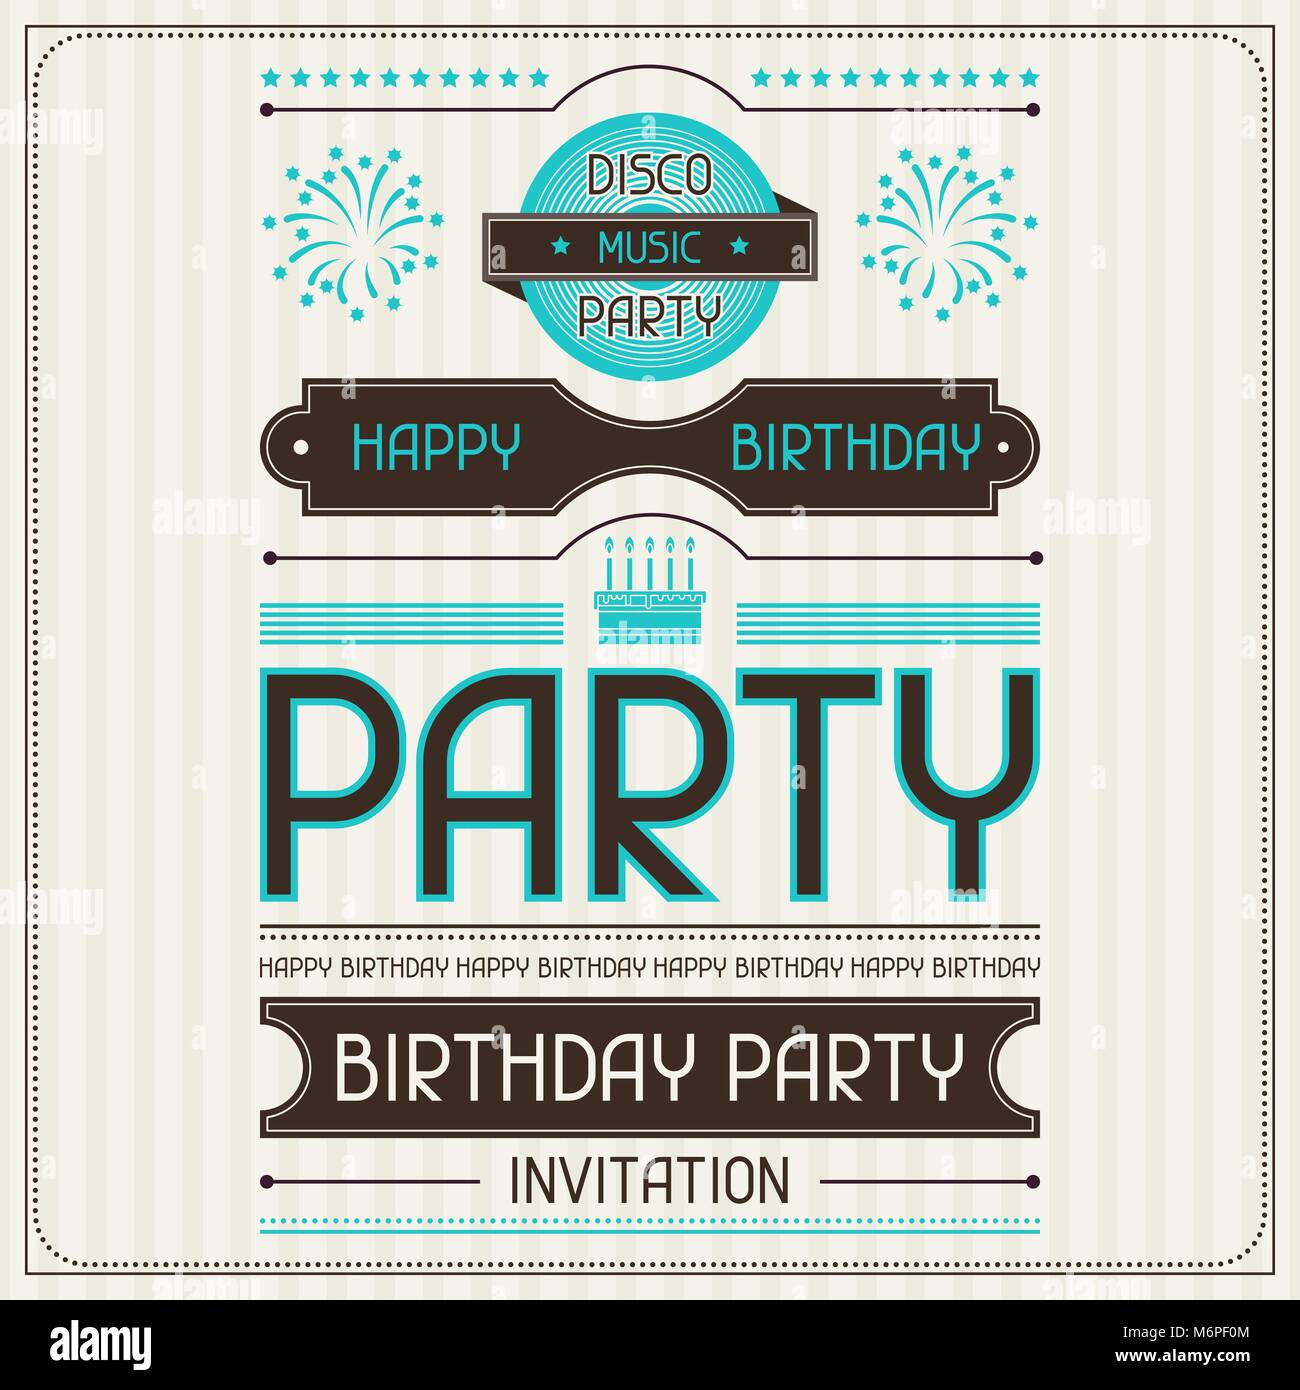 Invitation card for birthday in retro style - Stock Image